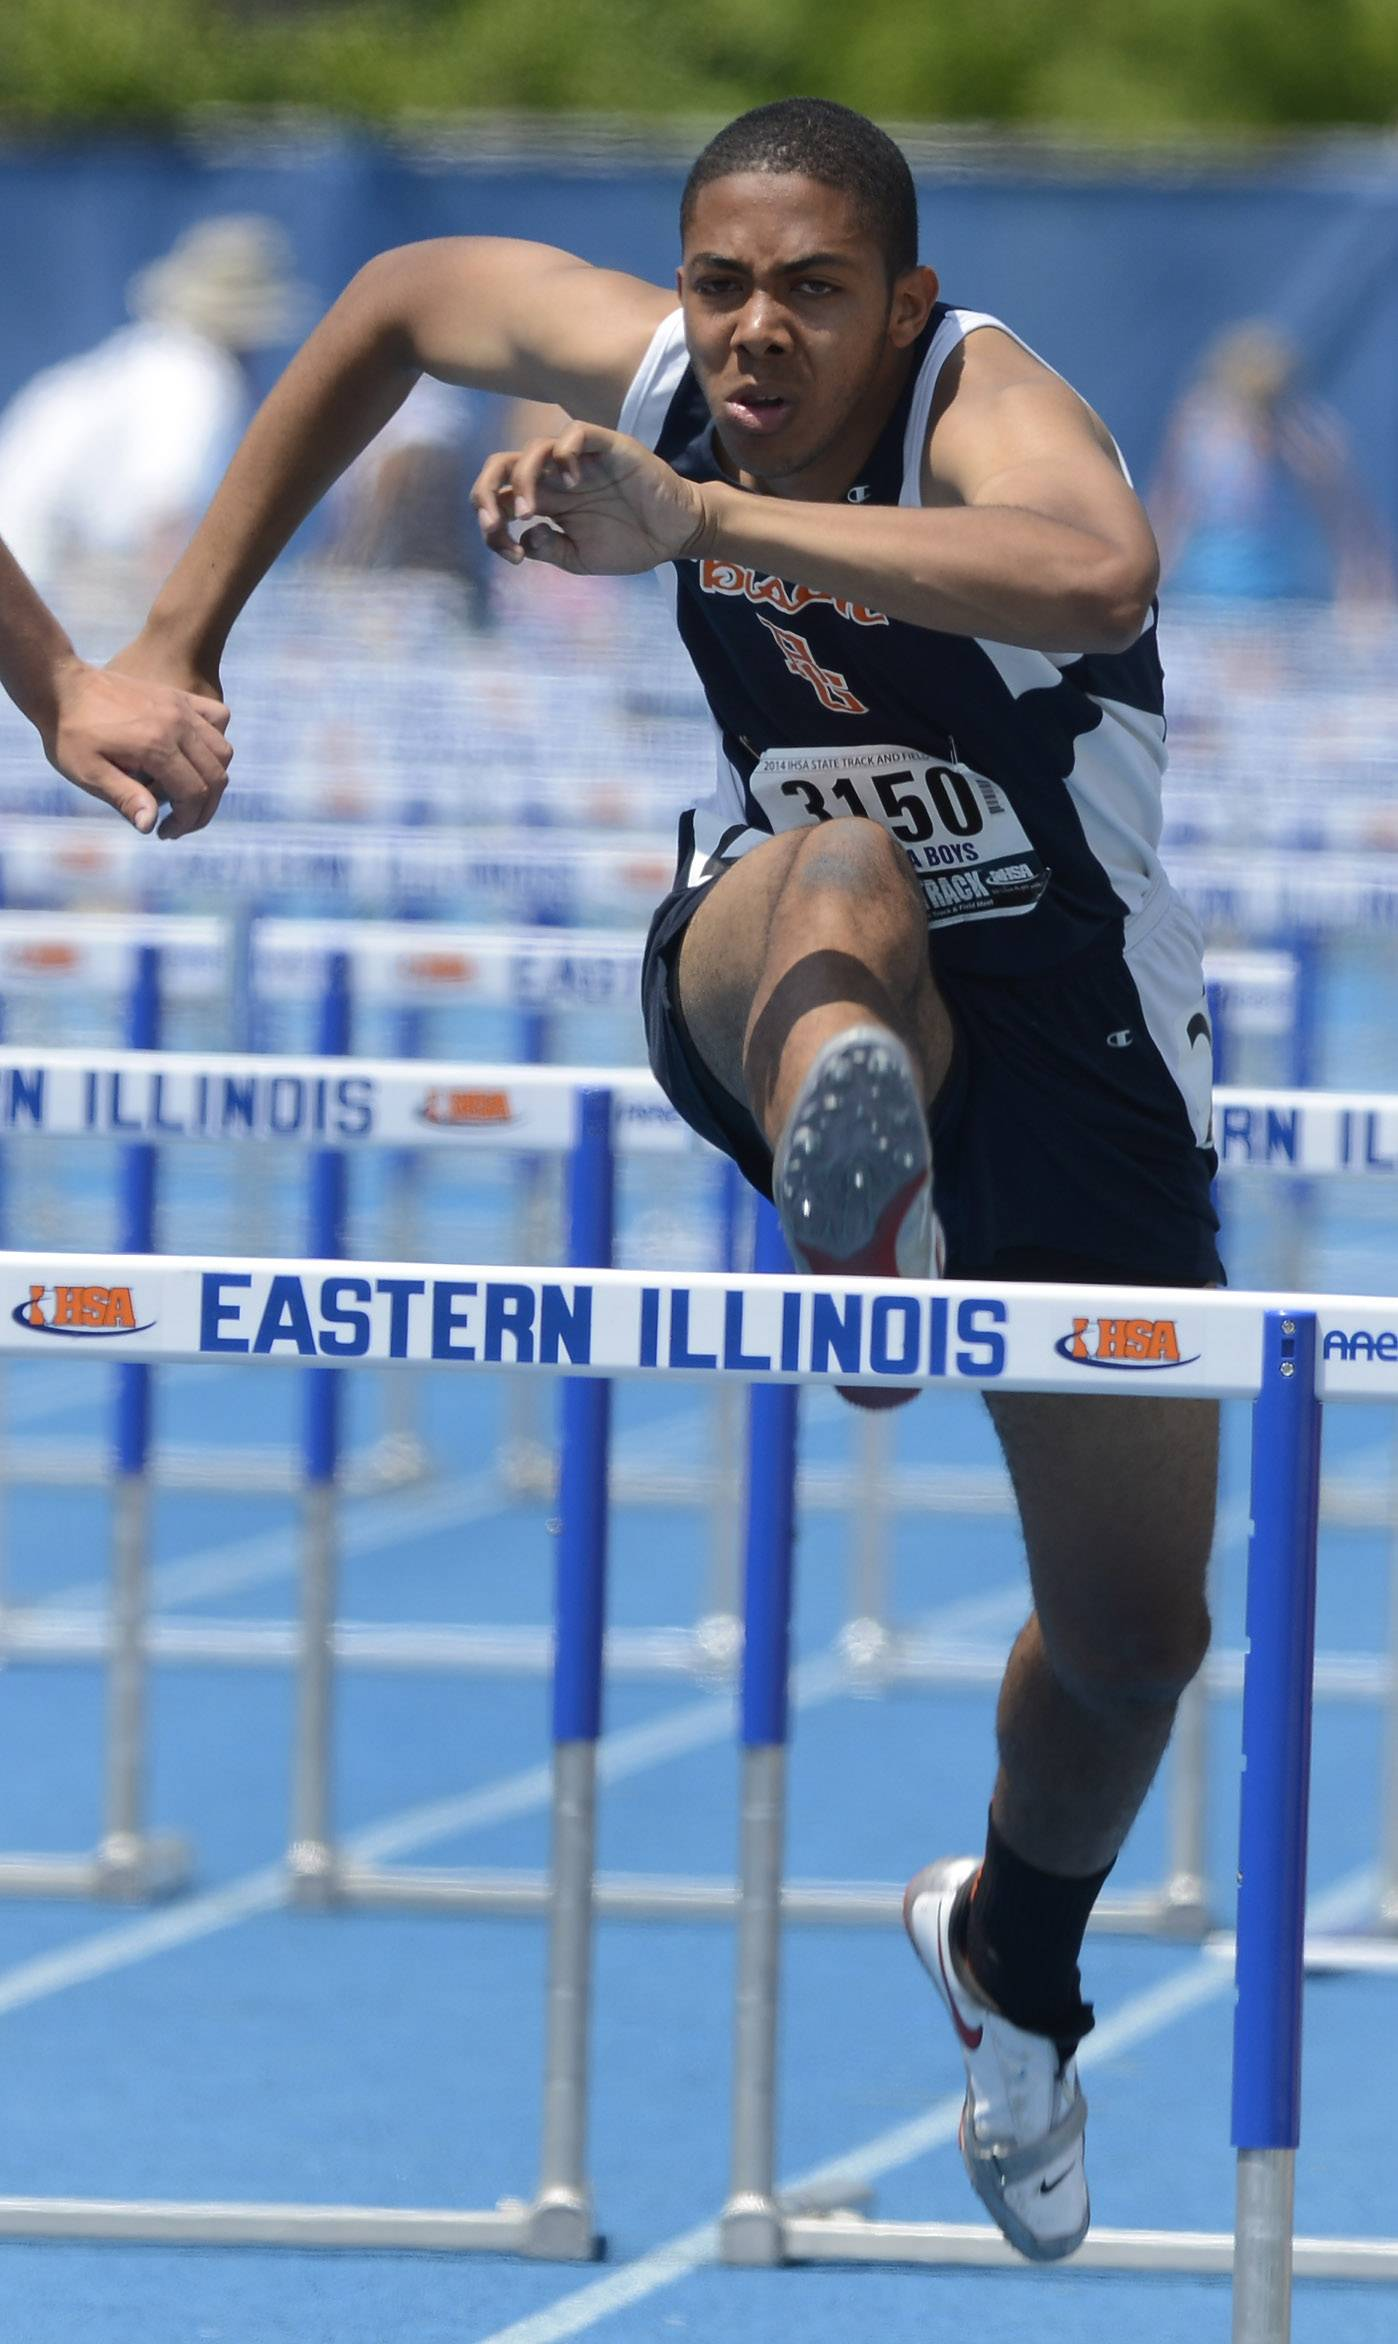 Buffalo Grove's Maurice Beryozkin clears the last hurdle while competing in the 110-meter high hurdles during the boys Class 3A state track and field preliminaries in Charleston Friday.